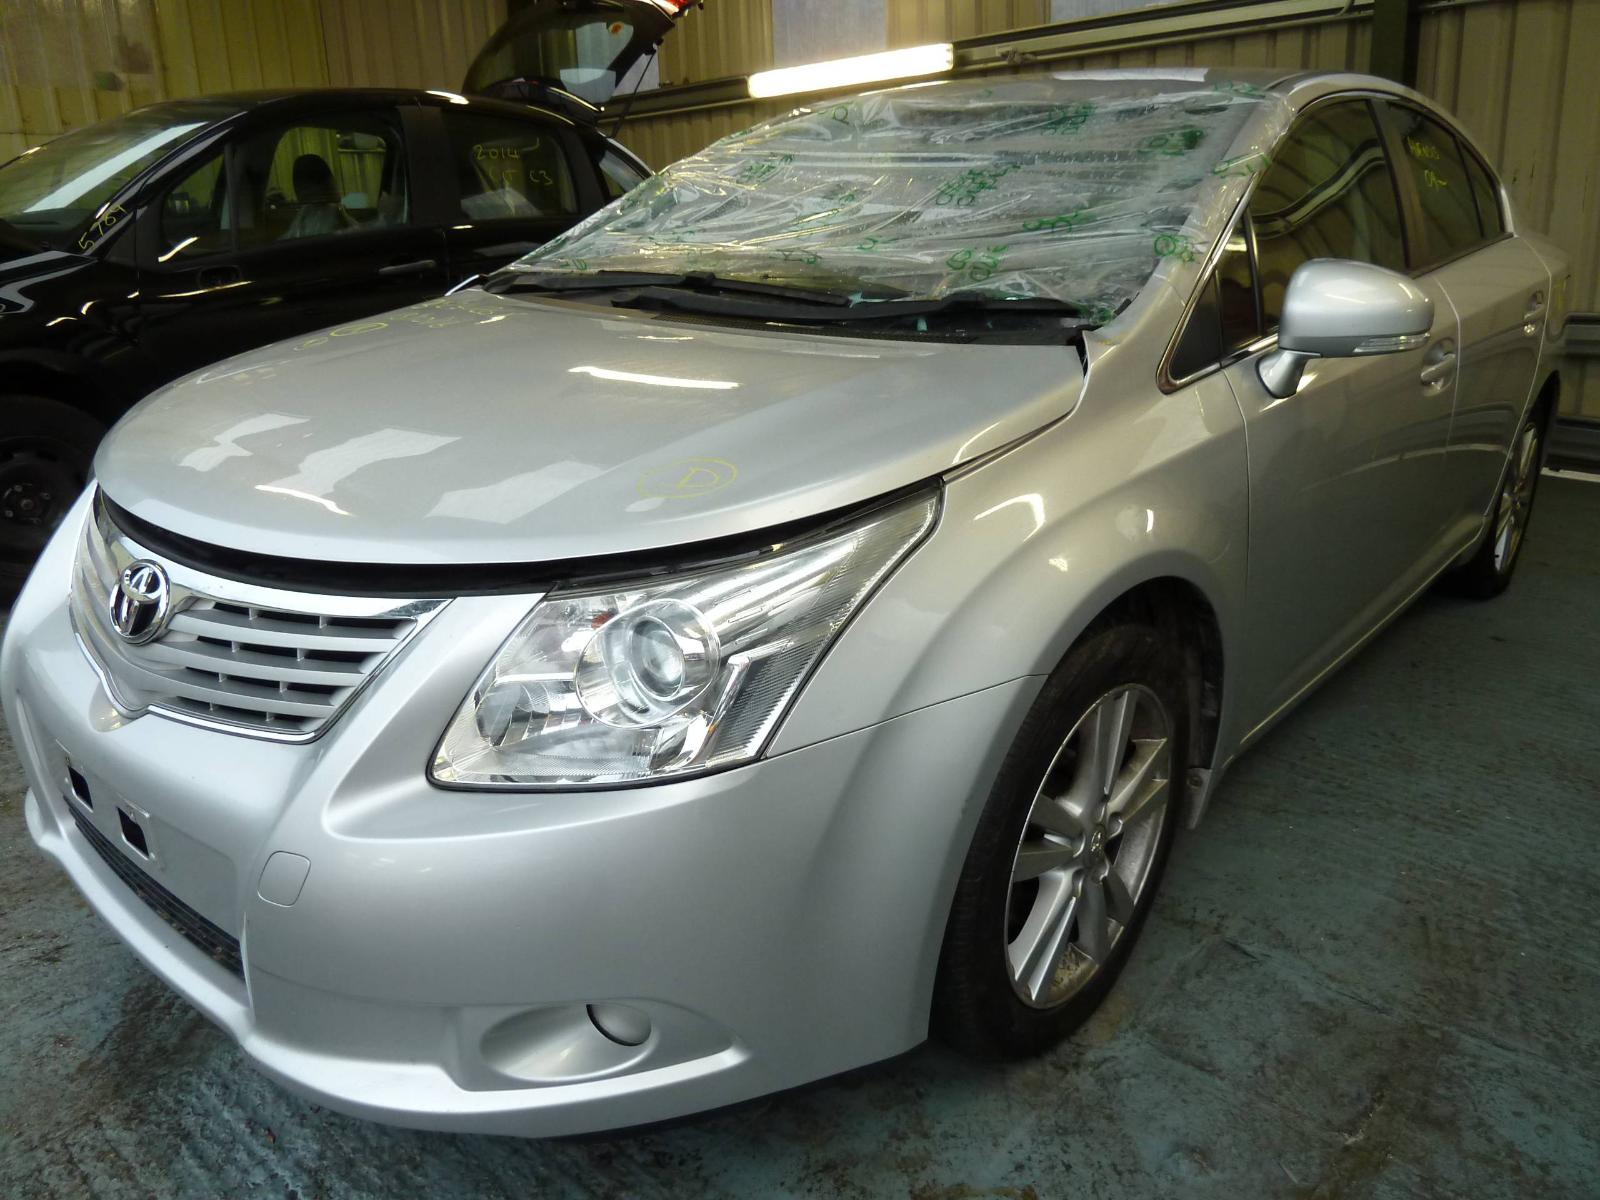 Image for a TOYOTA AVENSIS 2009 4 Door Saloon